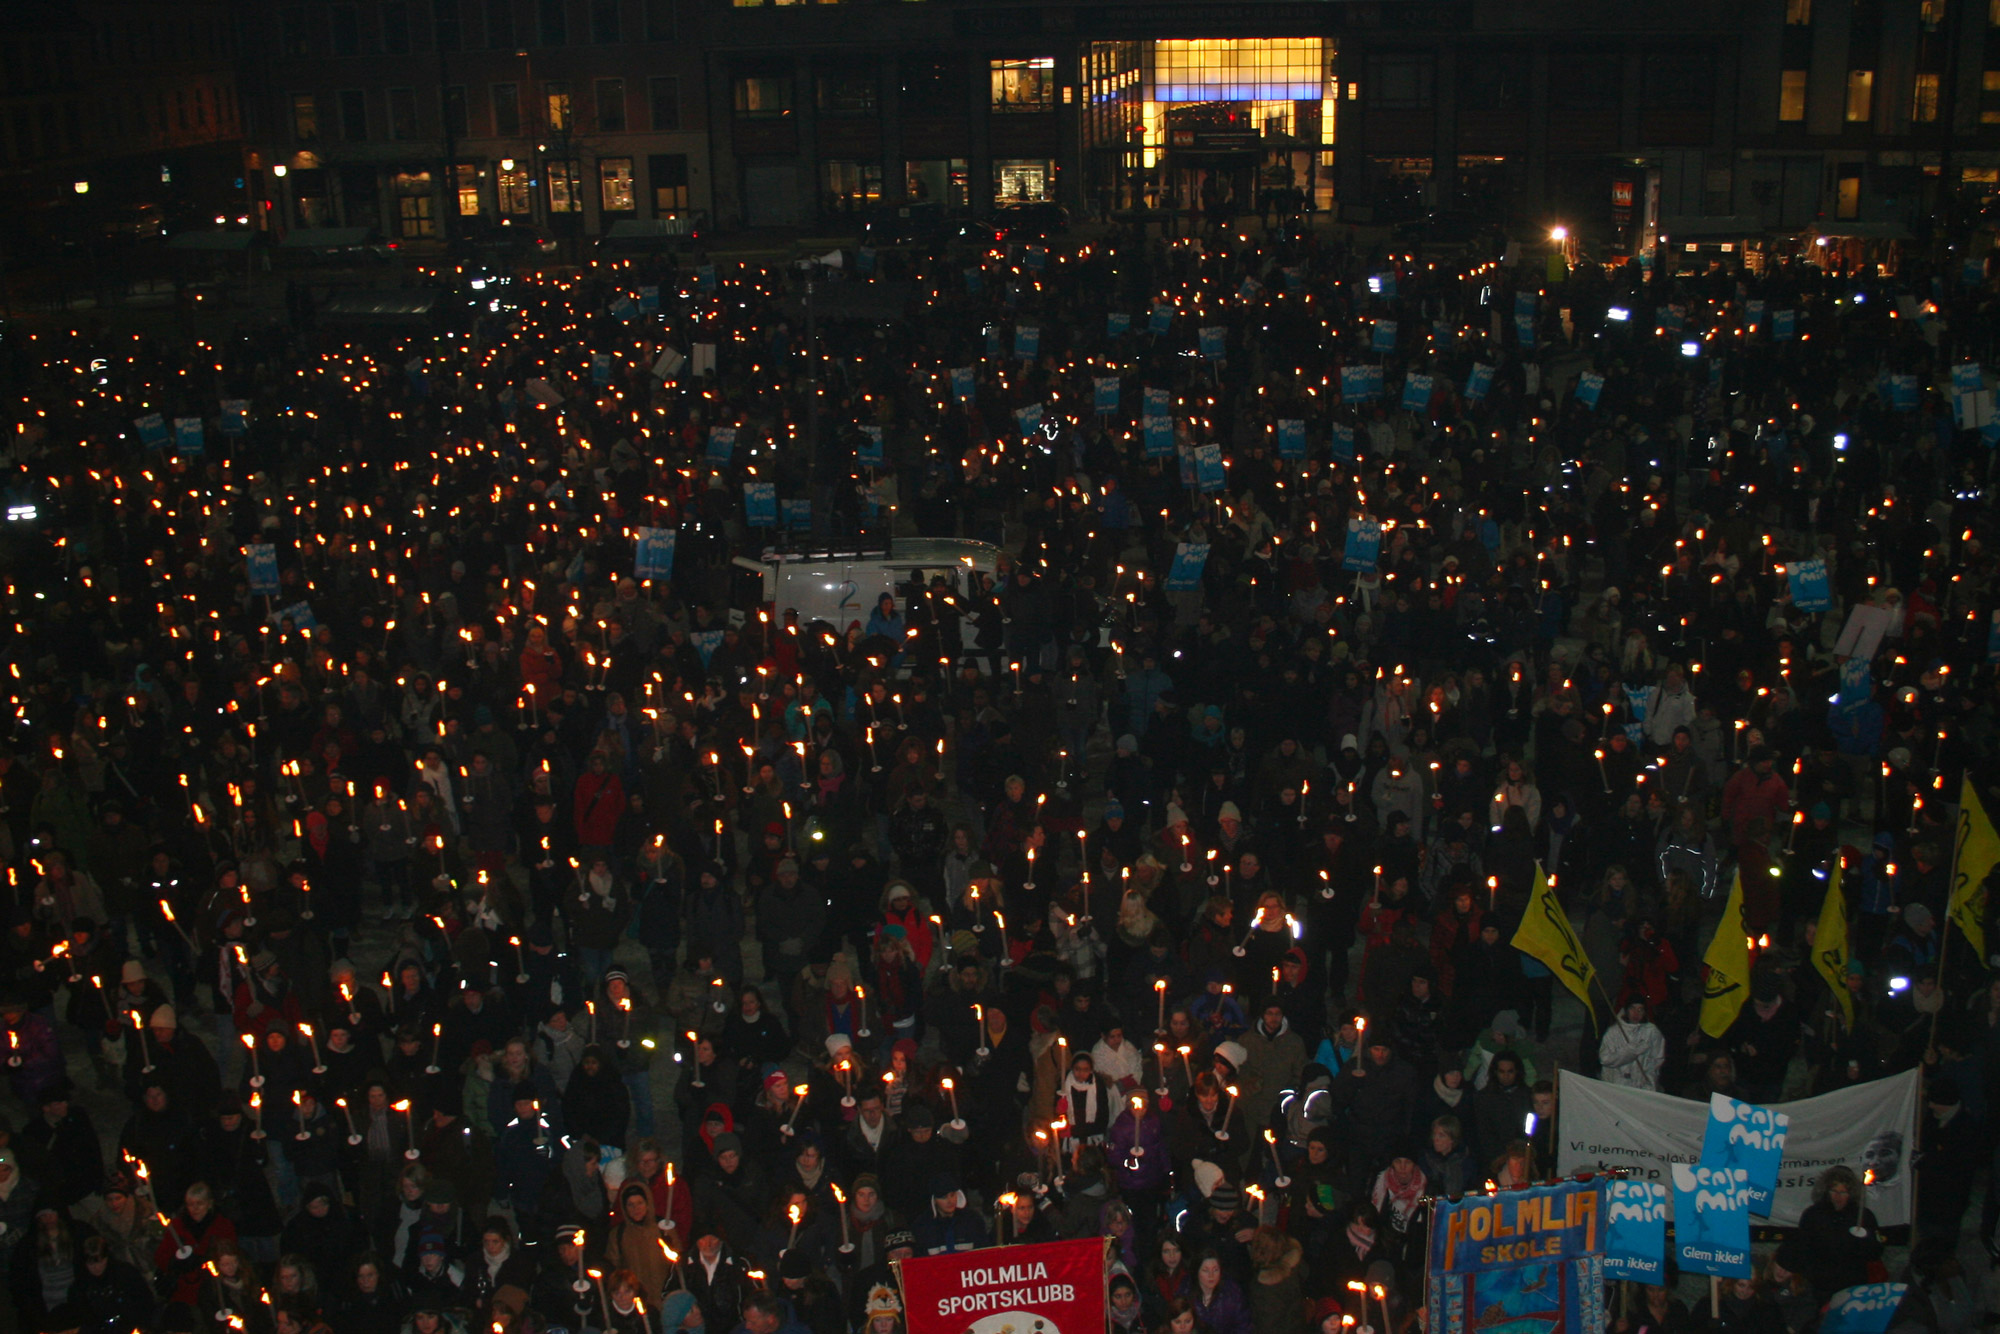 26 January 2011: A torchlight procession in Youngstorget, Oslo, in memory of Benjamin Hermansen on the 10th anniversary of his death. (Photograph by Rødt nytt , Wikimedia Commons, licensed under the Creative Commons Attribution-Share Alike 2.0 Generic licence)